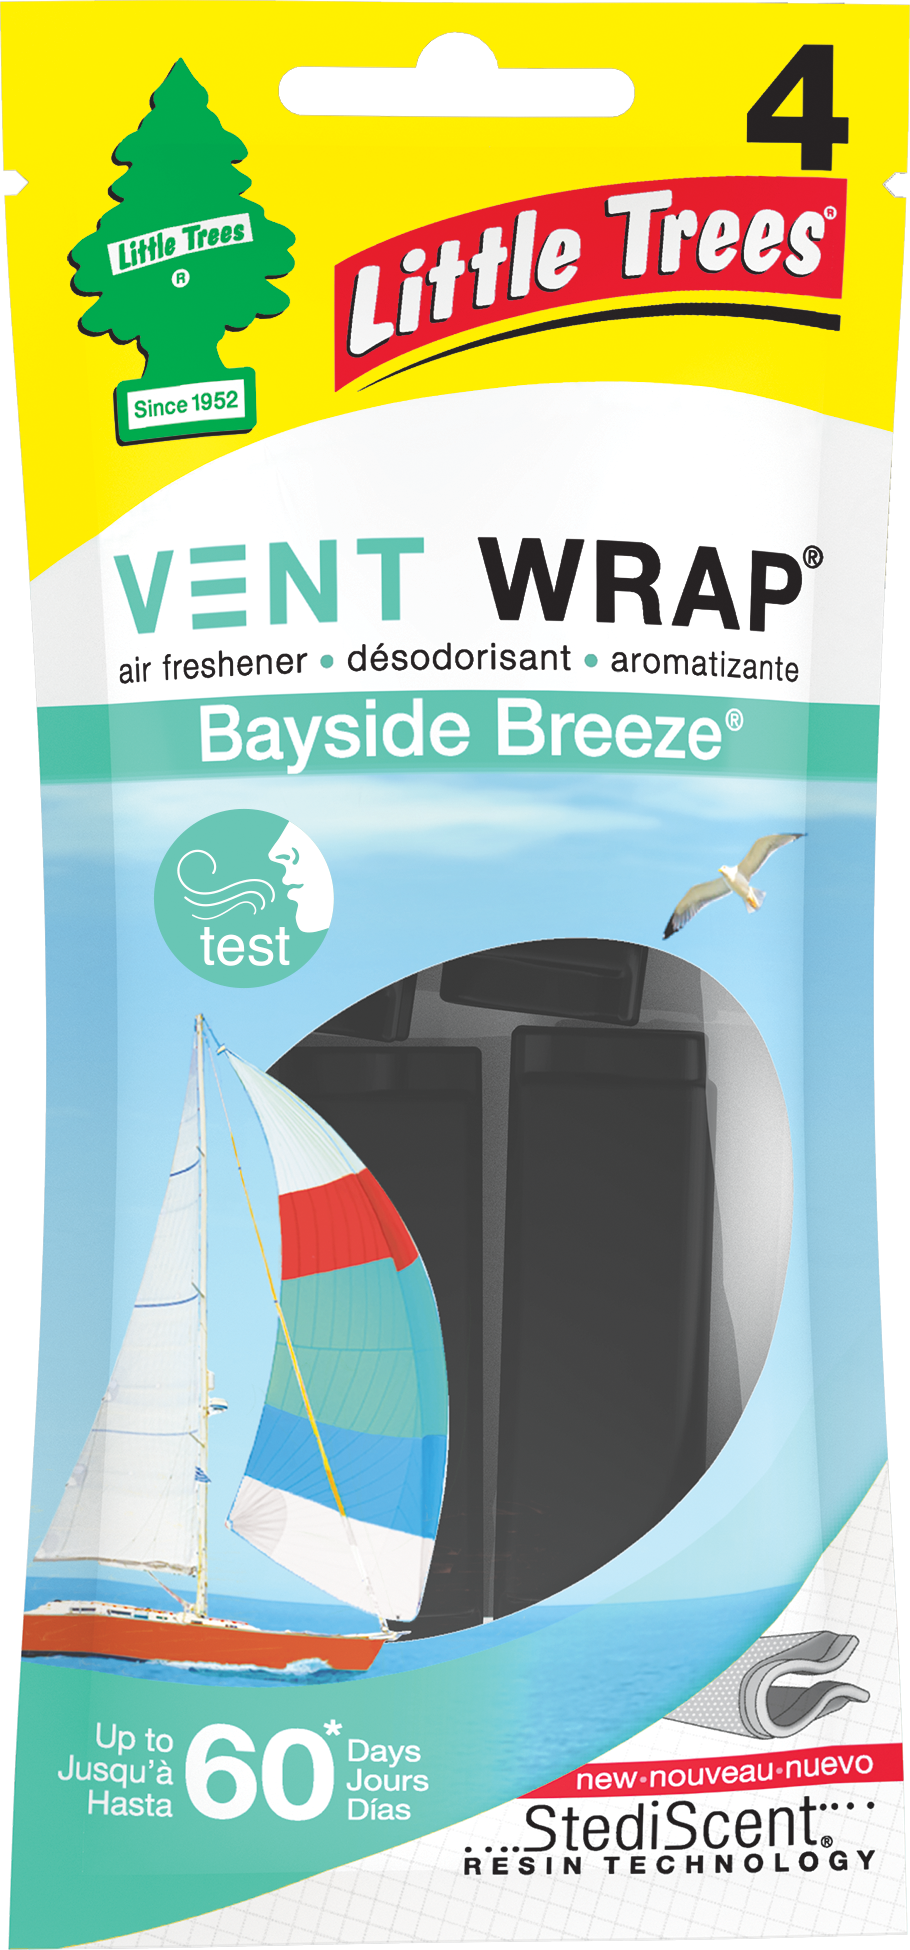 Little Trees Air Freshener Vent Wrap Bayside Breeze 4-Pack